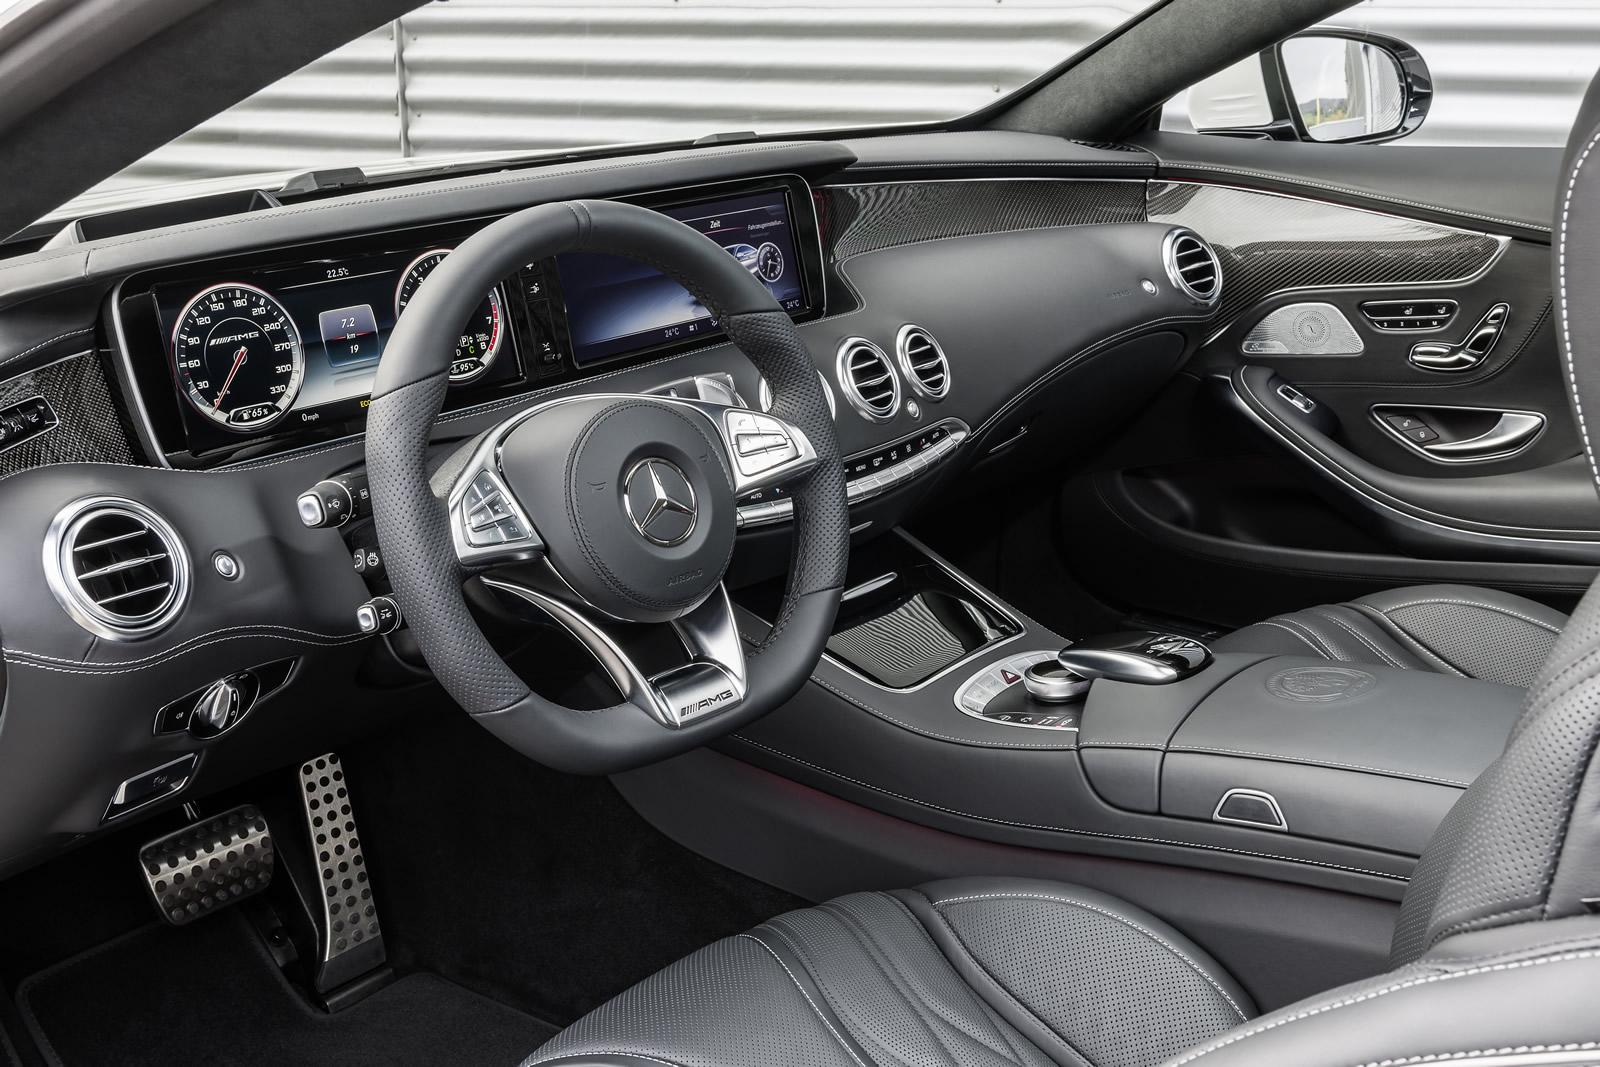 2014 Mercedes Benz S63 Amg Coupe Dashboard Forcegt Com